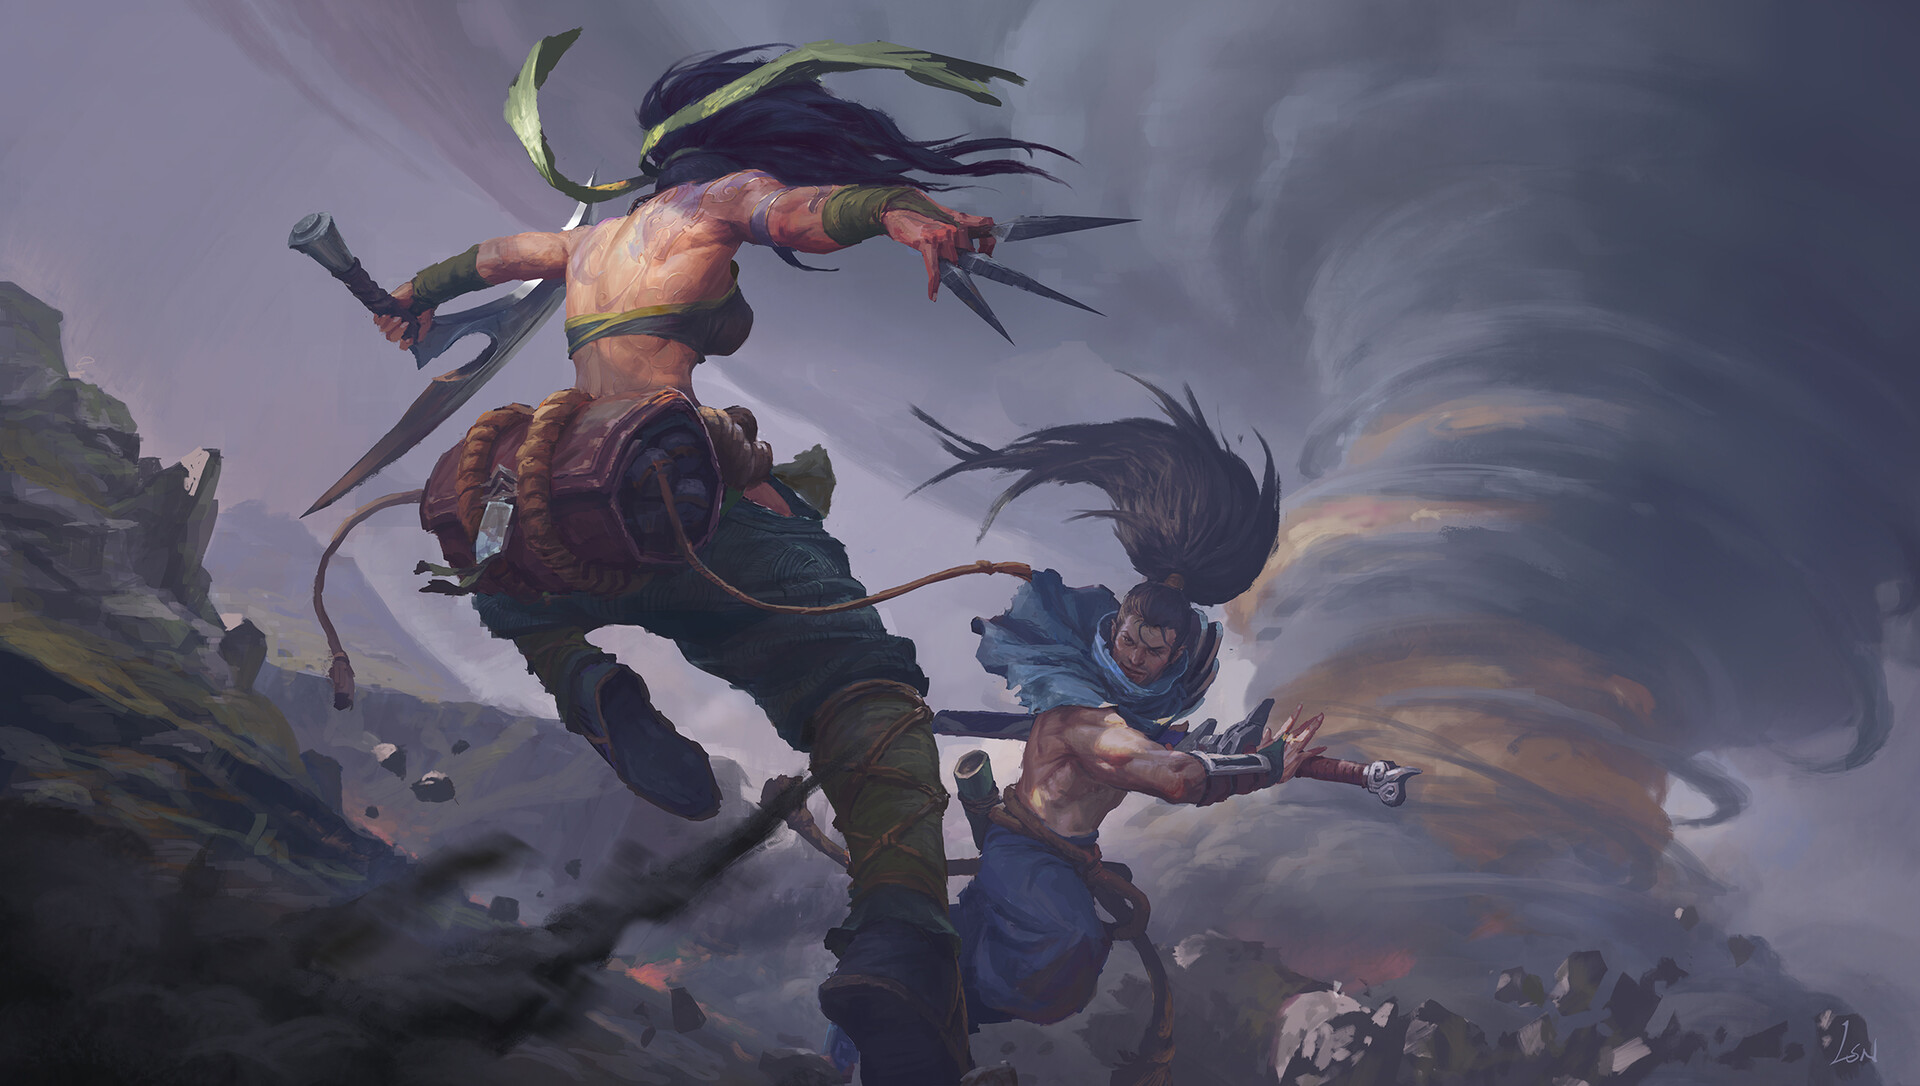 Video Game League Of Legends Akali Hd Wallpaper Background Akali Yasuo 1920x1086 Download Hd Wallpaper Wallpapertip